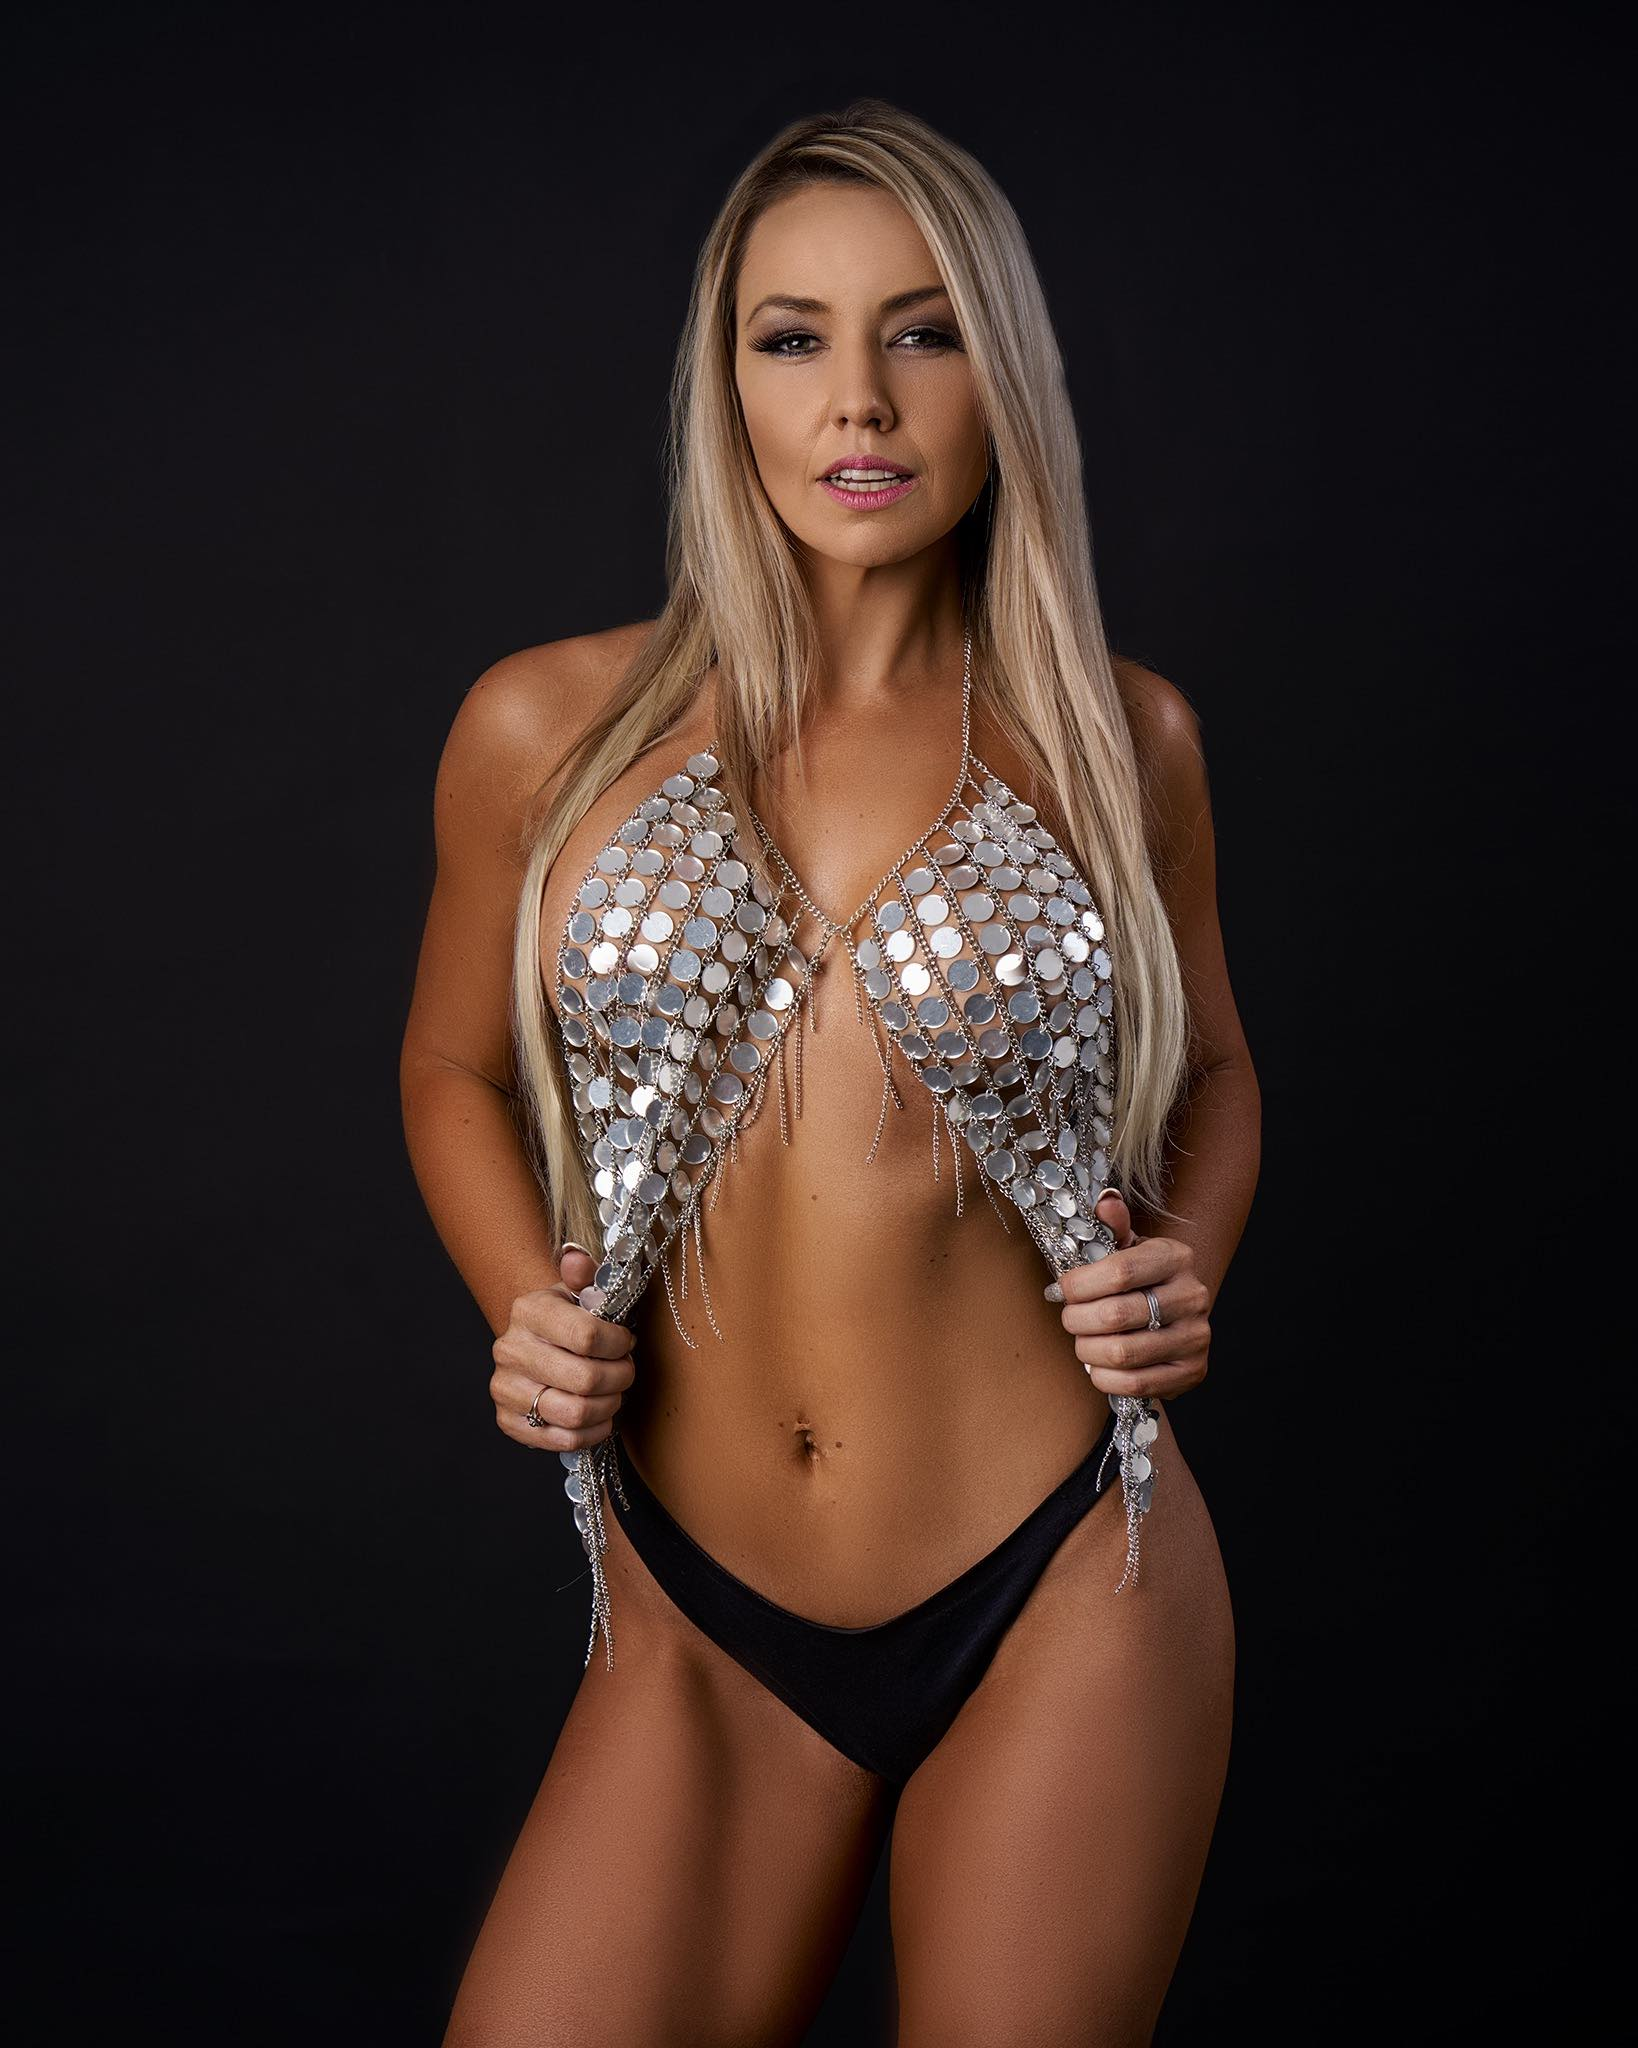 Our SA Babes feature with Farrah Rymer